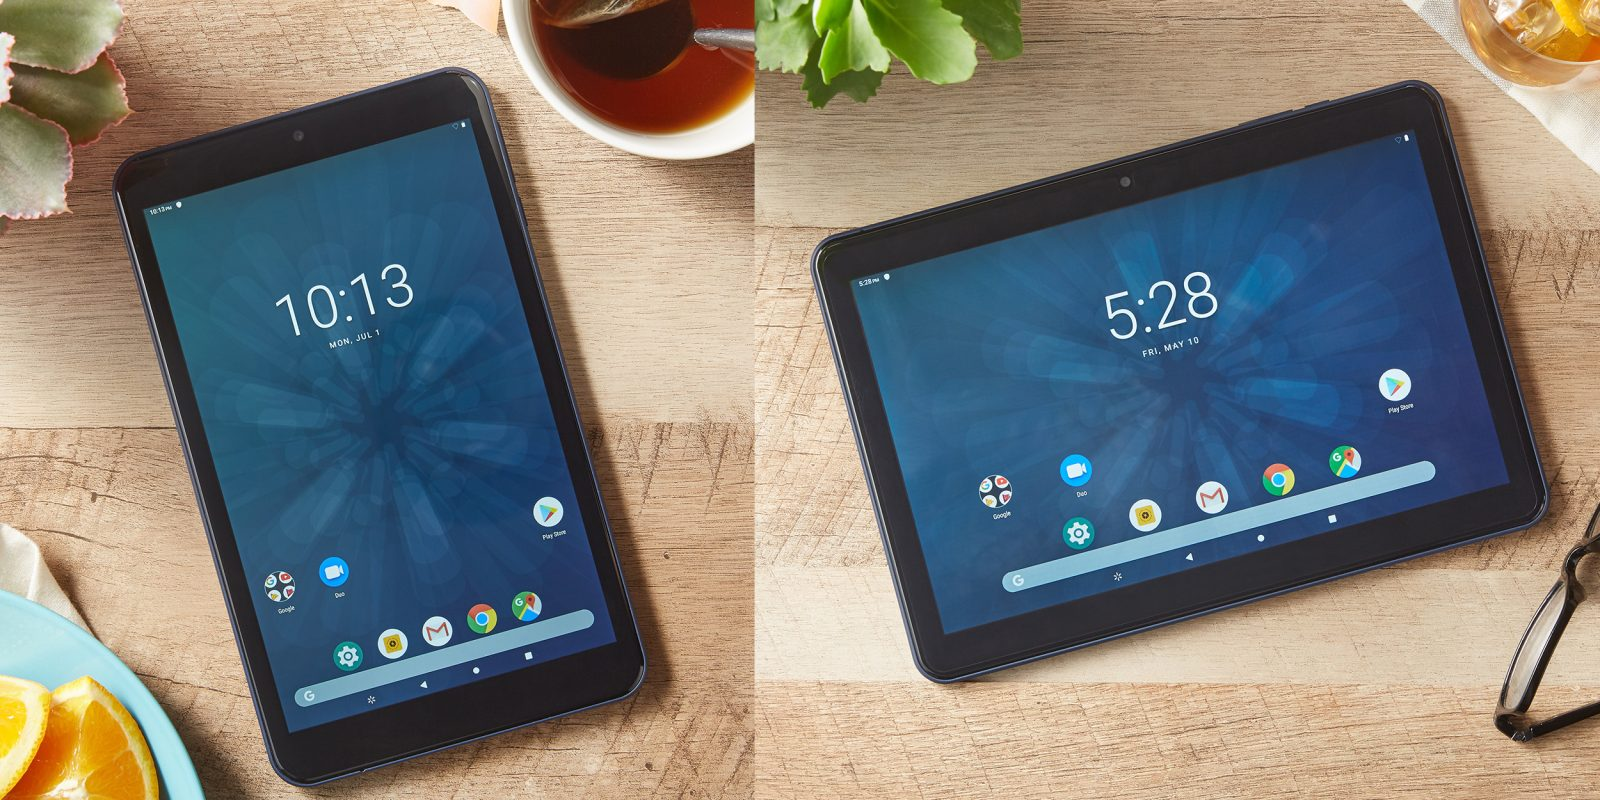 Groovy Walmarts Onn Android Tablets Now Available From 64 Download Free Architecture Designs Scobabritishbridgeorg